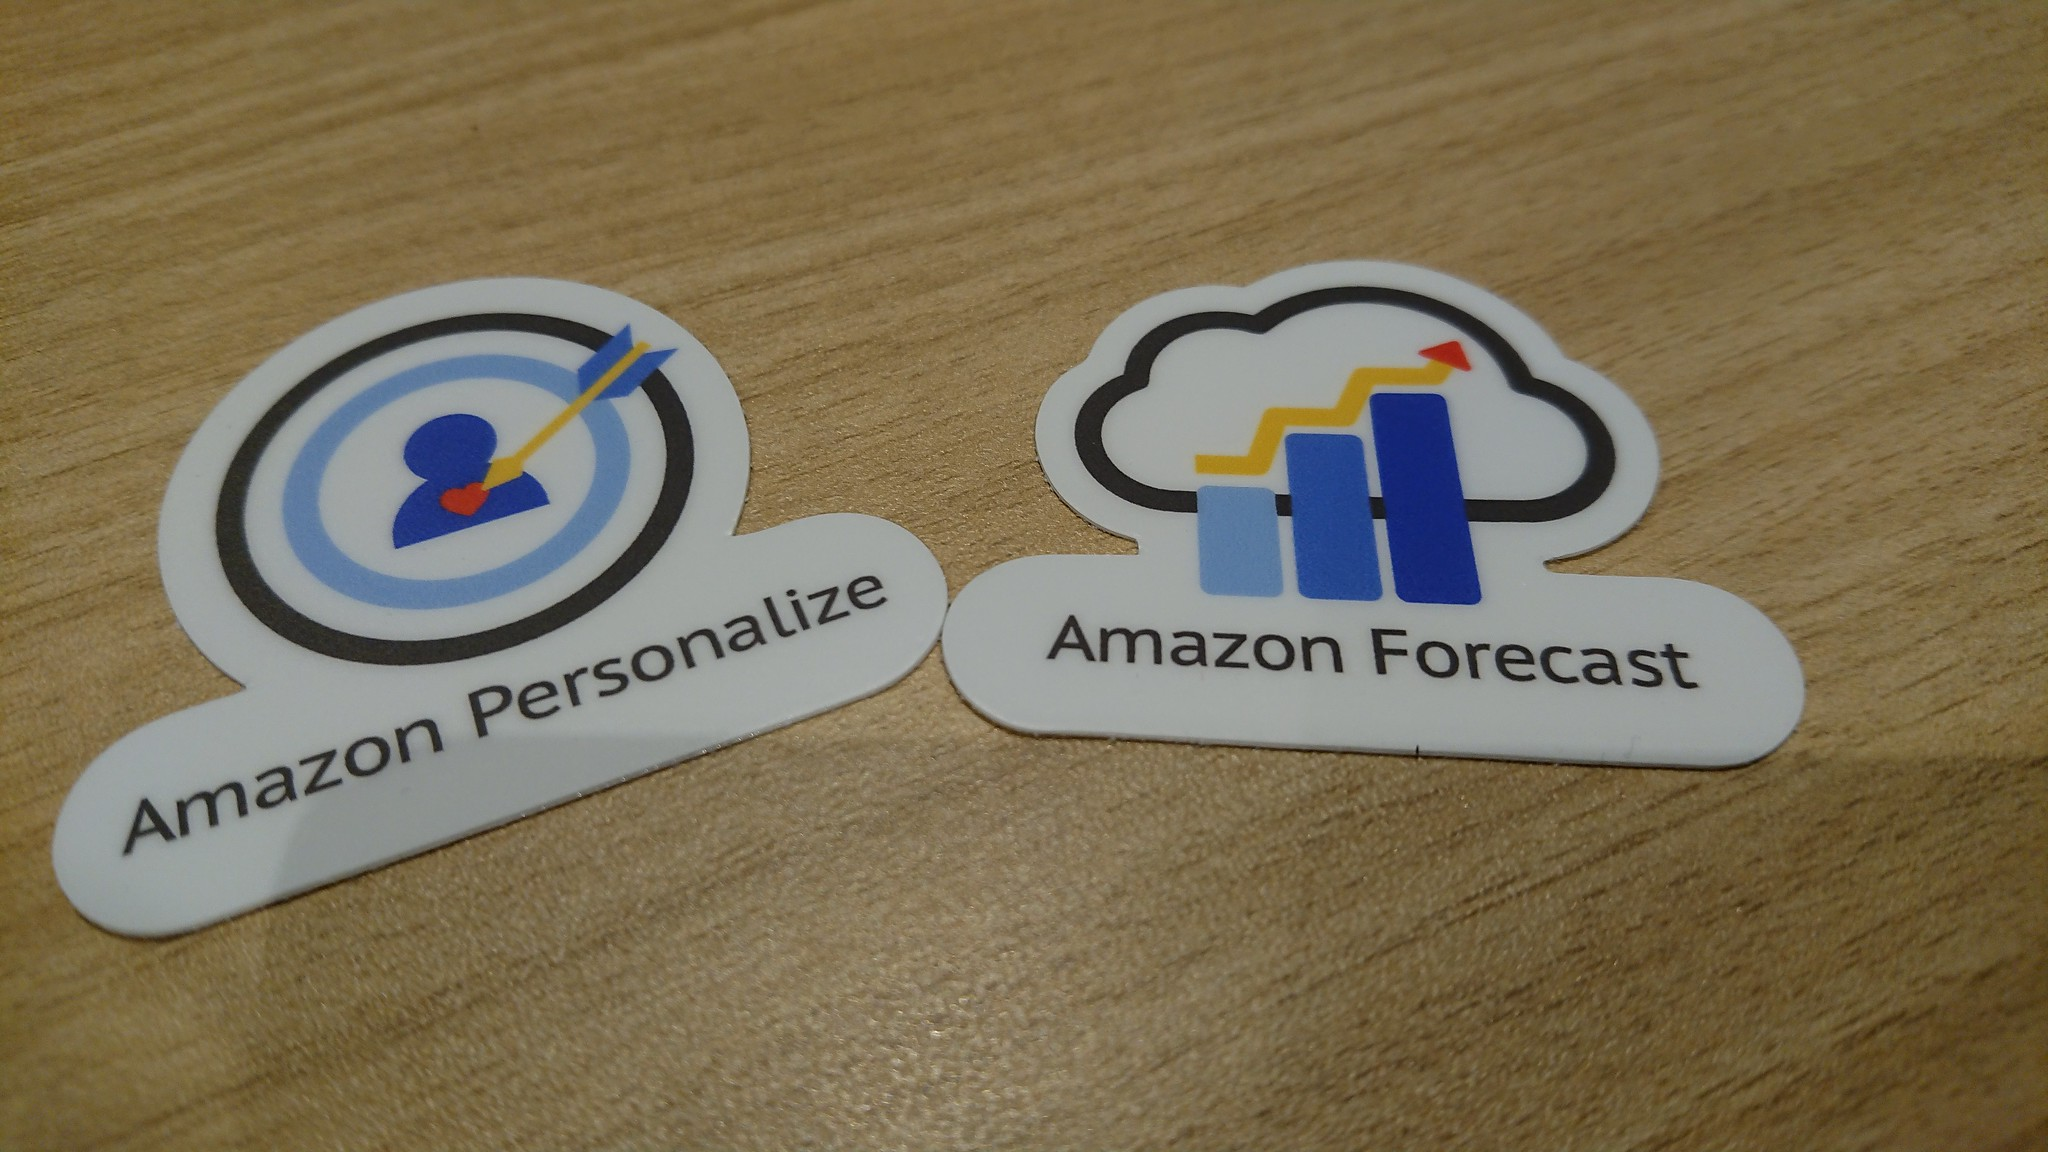 Aws Forecast and Personalize seminer